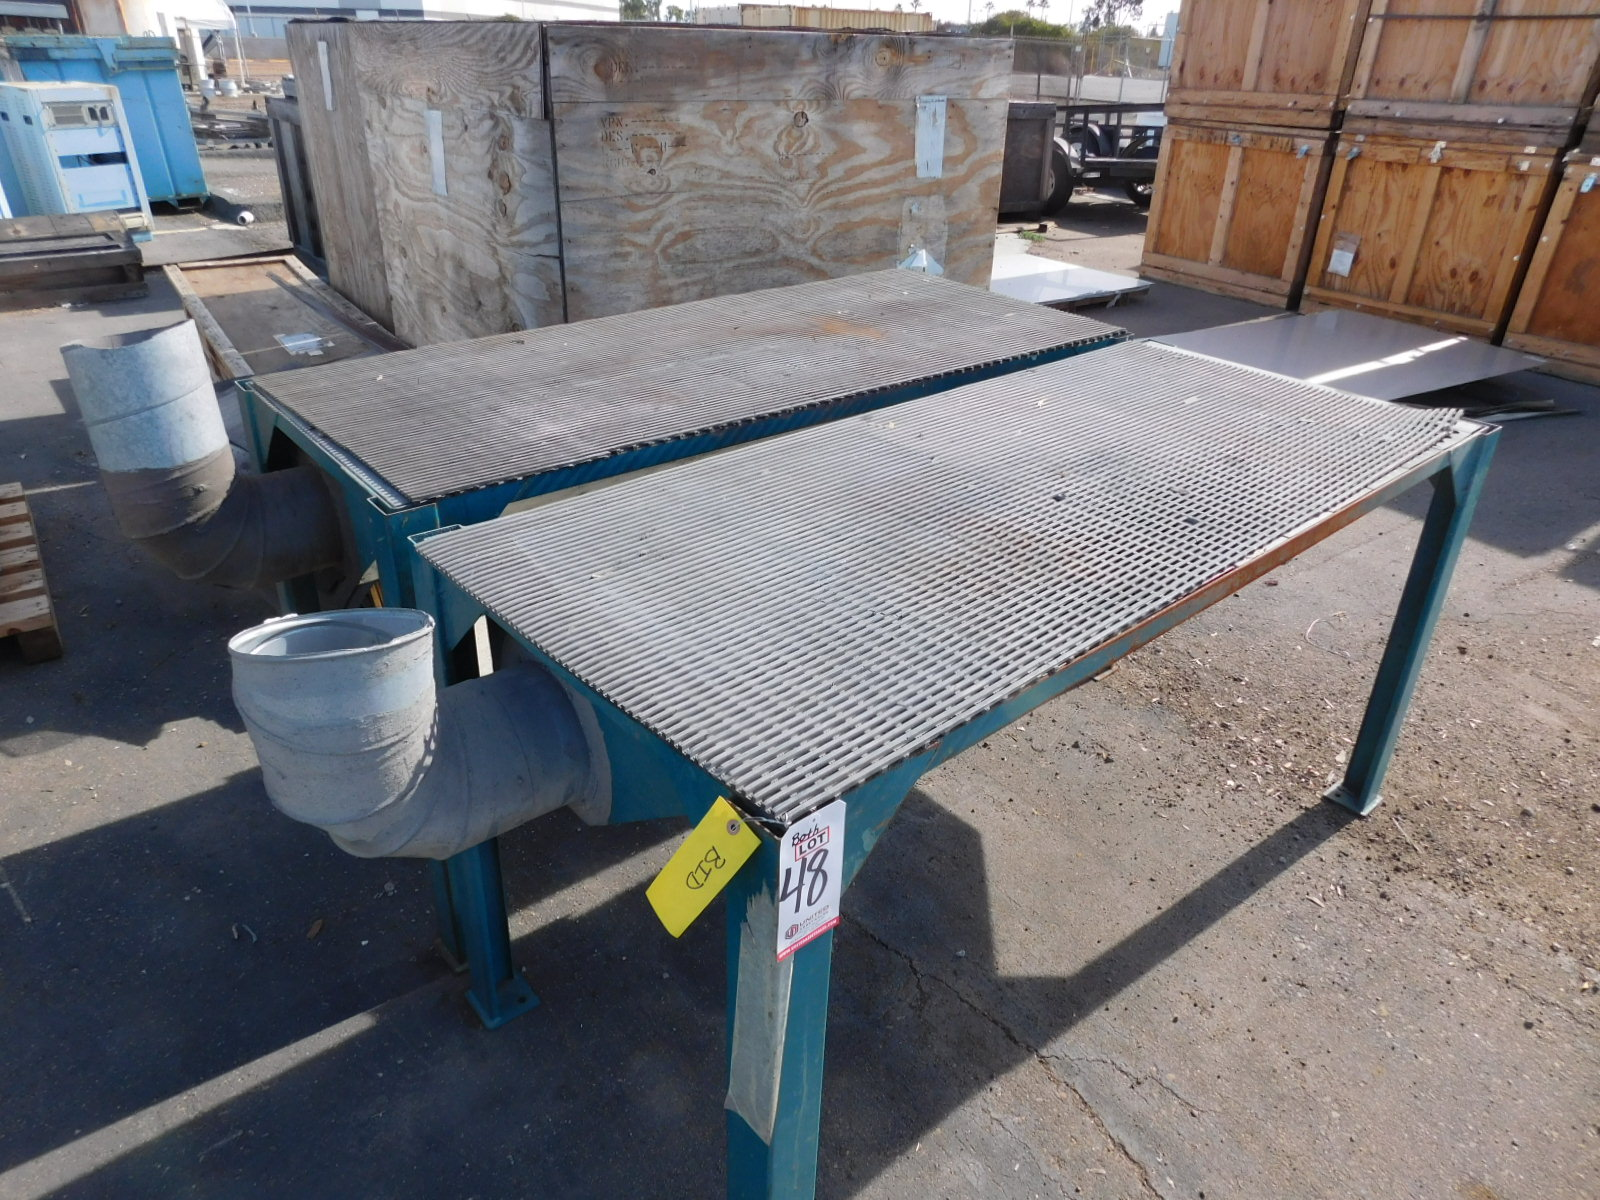 """Lot 48 - LOT - (2) VACUUM SANDING TABLES, EACH TABLE MEASURES 6' X 30"""", 36"""" WORKING HEIGHT"""